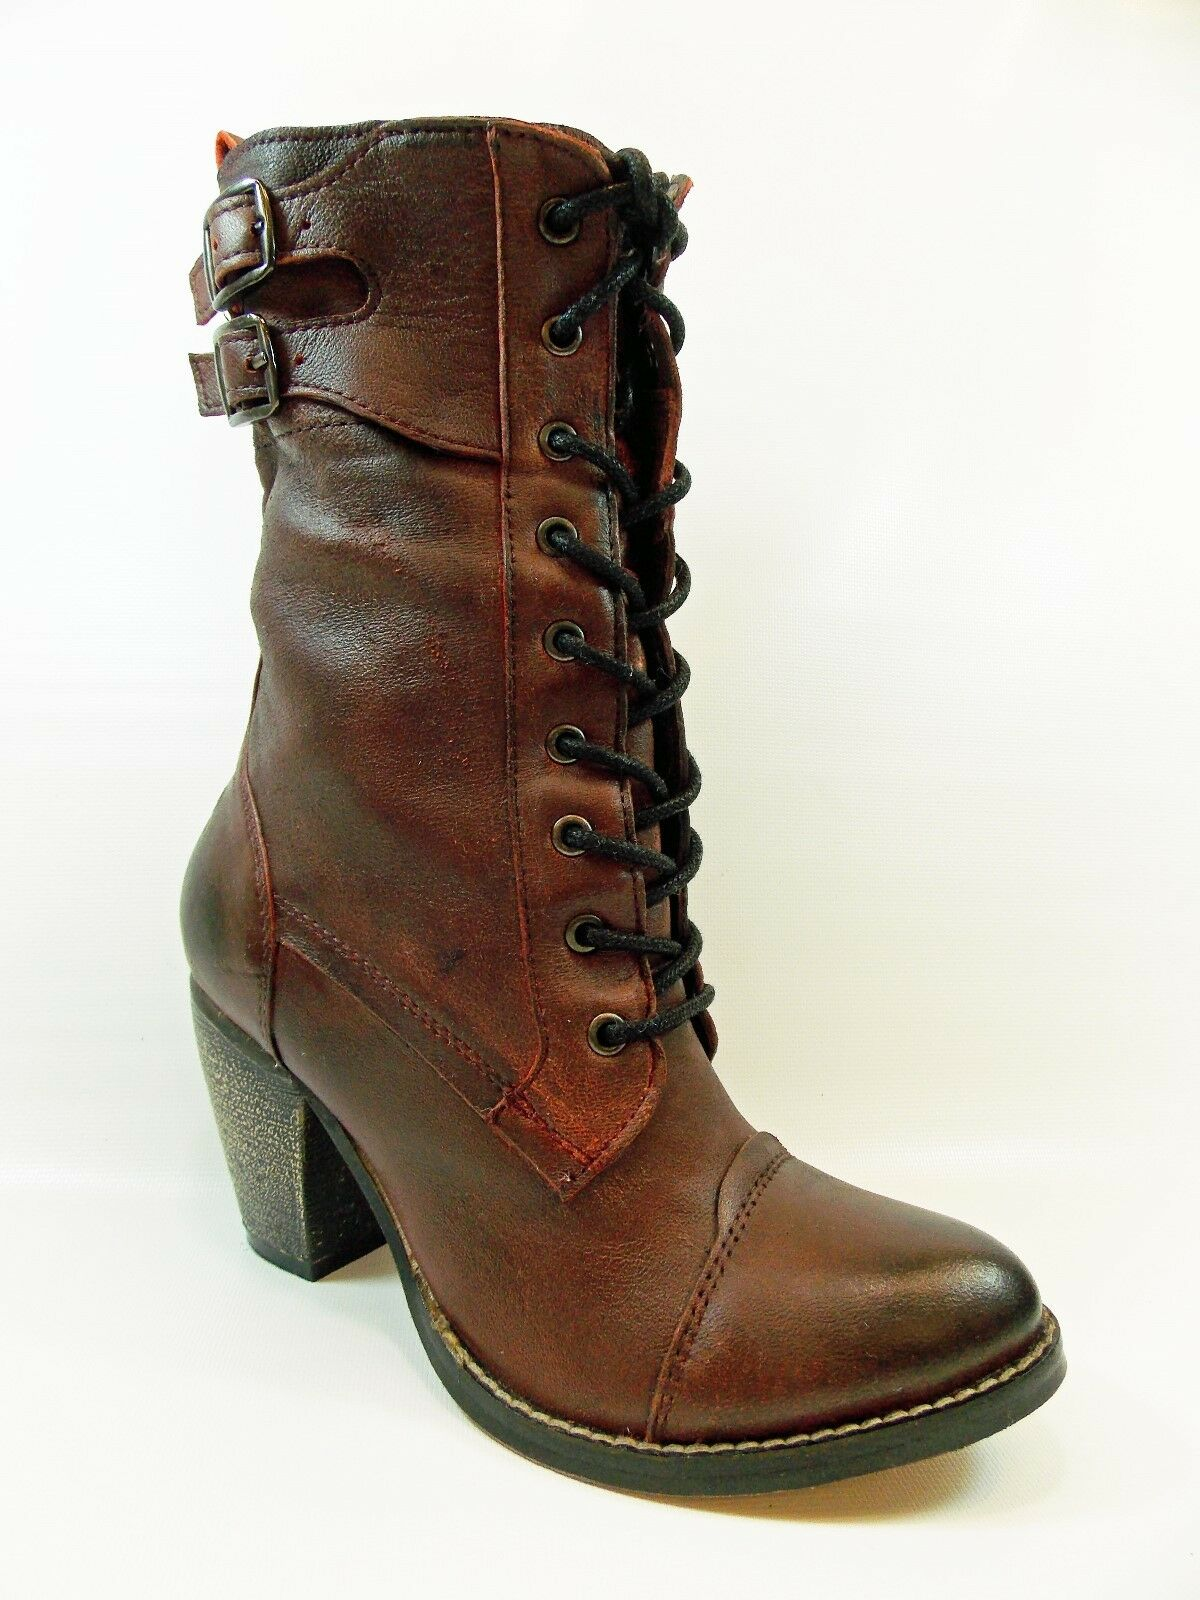 MIA NANETTE BURGUNDY ANTIQUE LEATHER ANKLE BOOT LACE & ZIP Damenschuhe 5 MSRP 139.95